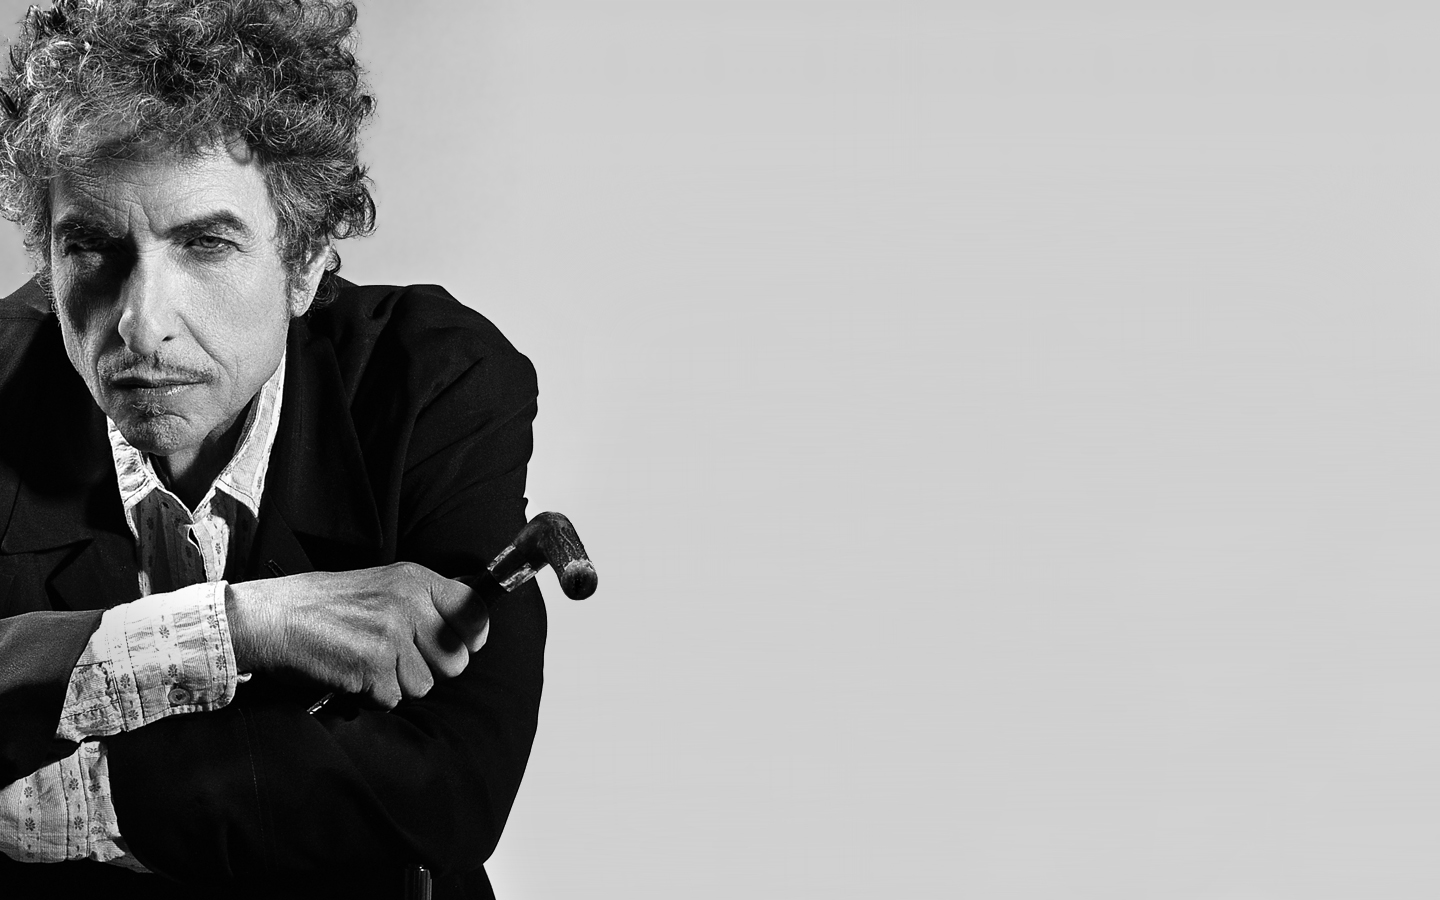 bob-dylan-hd-wallpapers-free-download-6